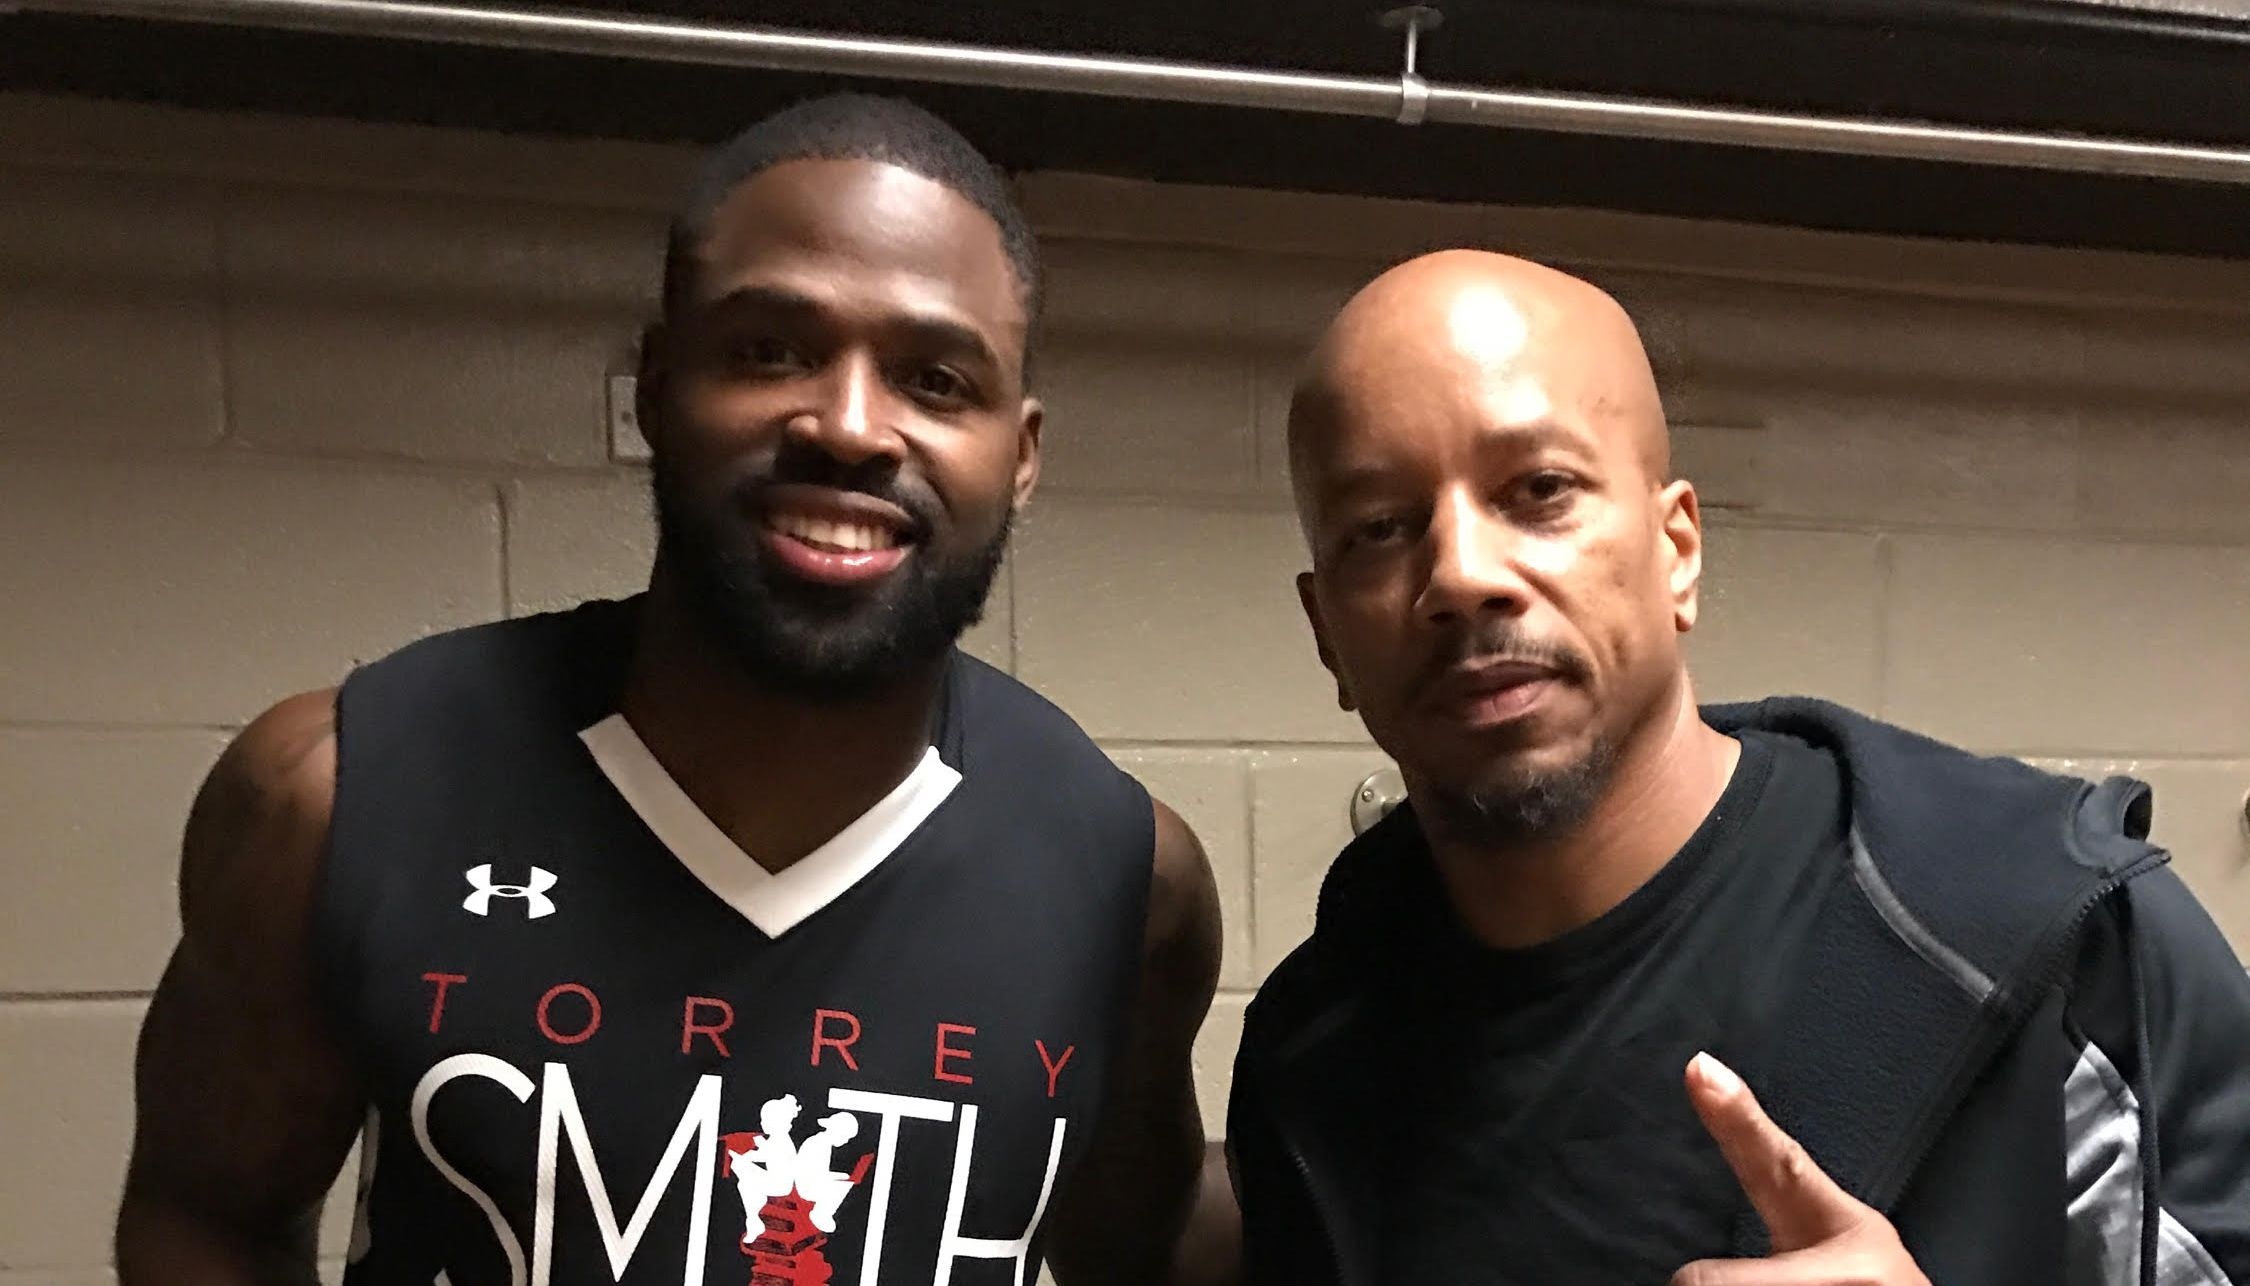 Torrey Smith Charity Basketball Game 2017